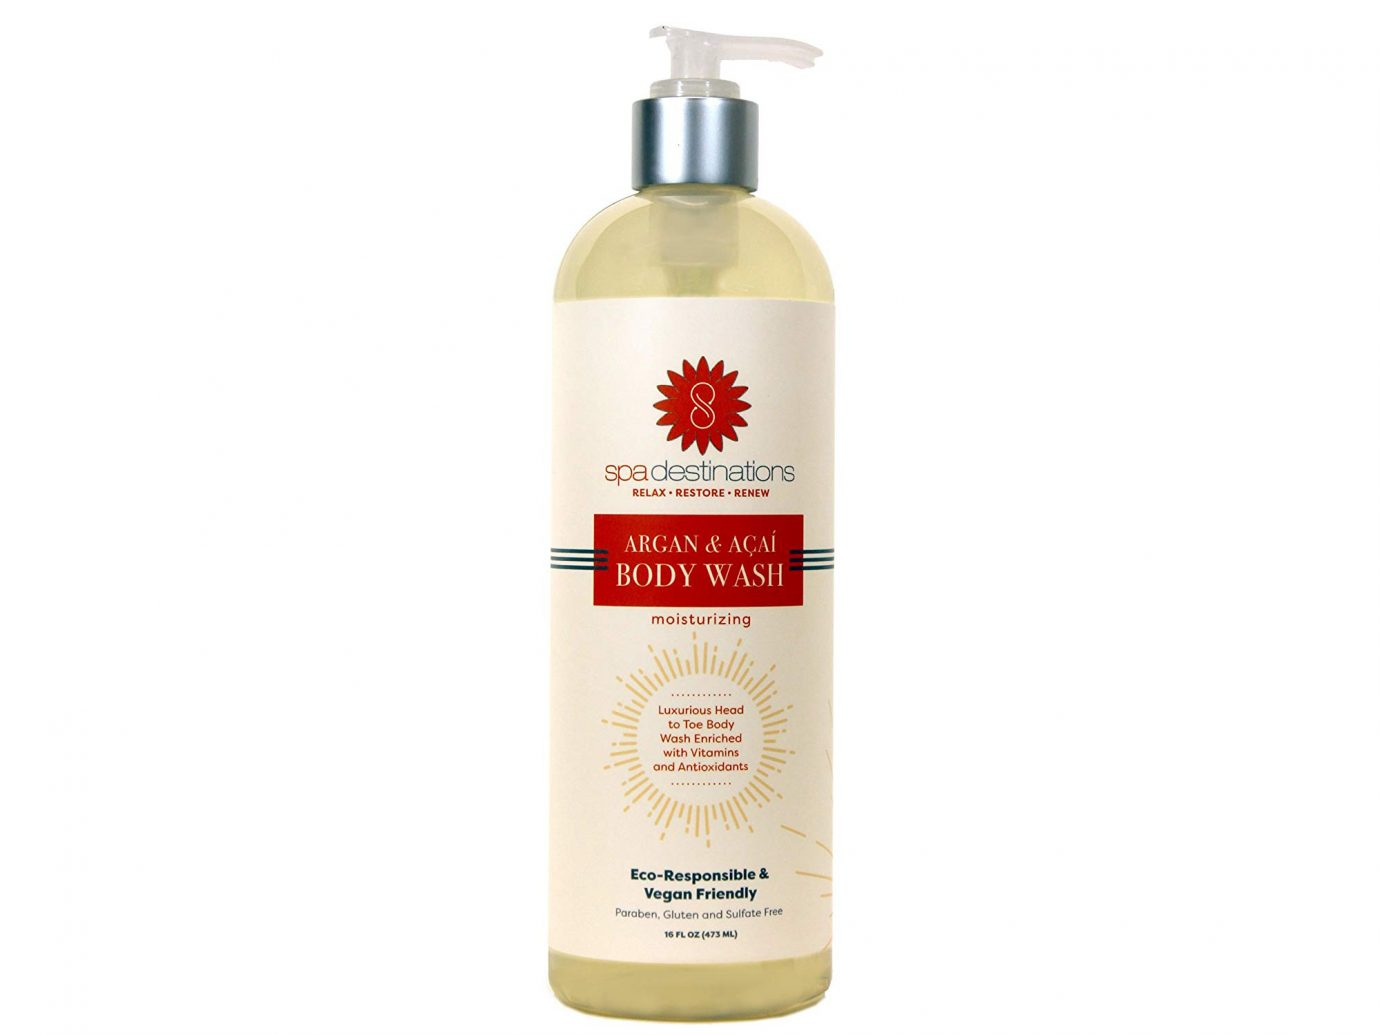 Spa Destinations Argan & Acai Moisturizing Body Wash